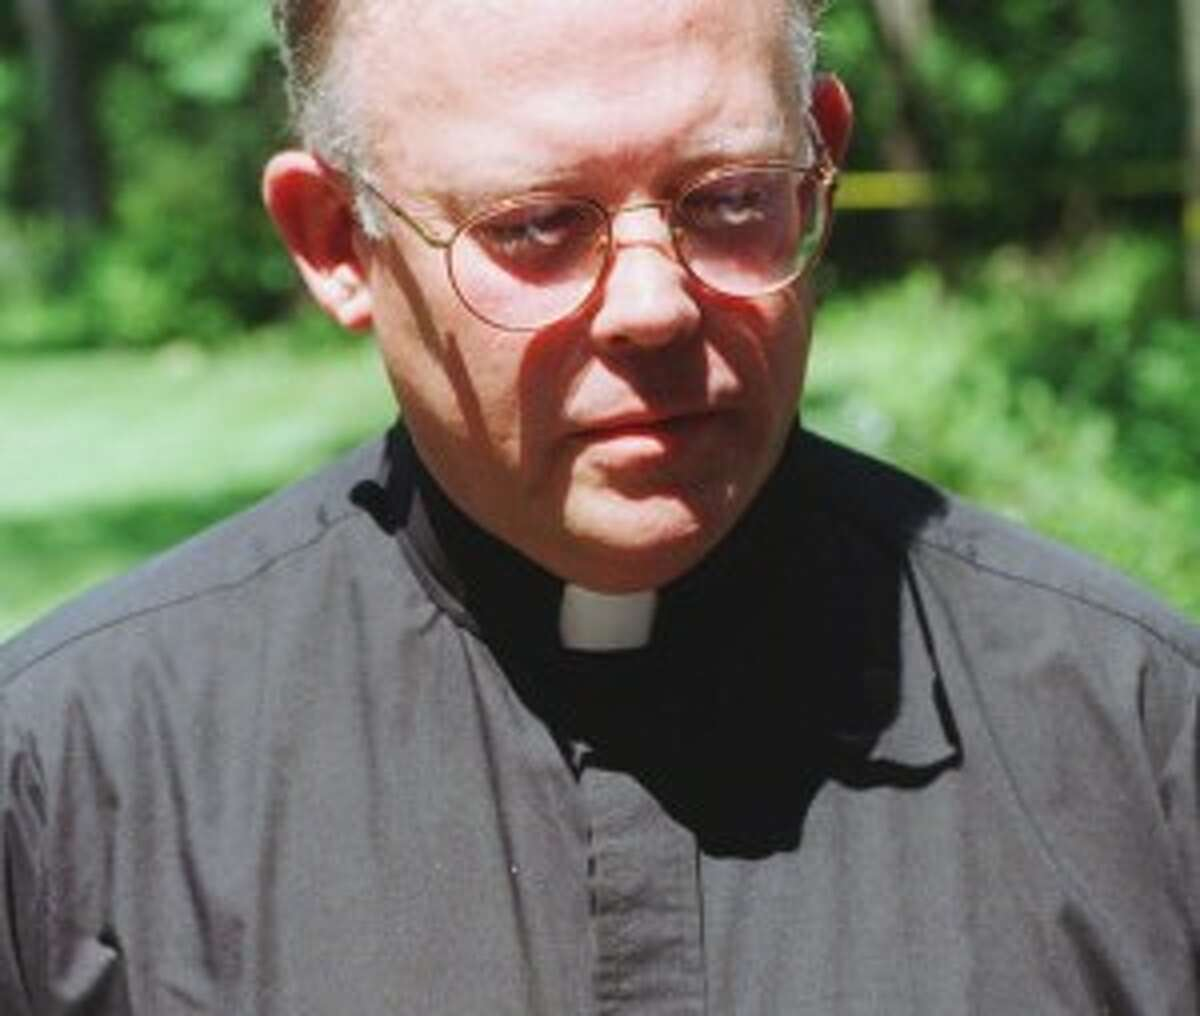 Father Robert Morrissey, of Saint Mary's Church in Ridgefield, Conn., on Thursday, July 18, 1996. (AP file Photo/Douglas Healey)